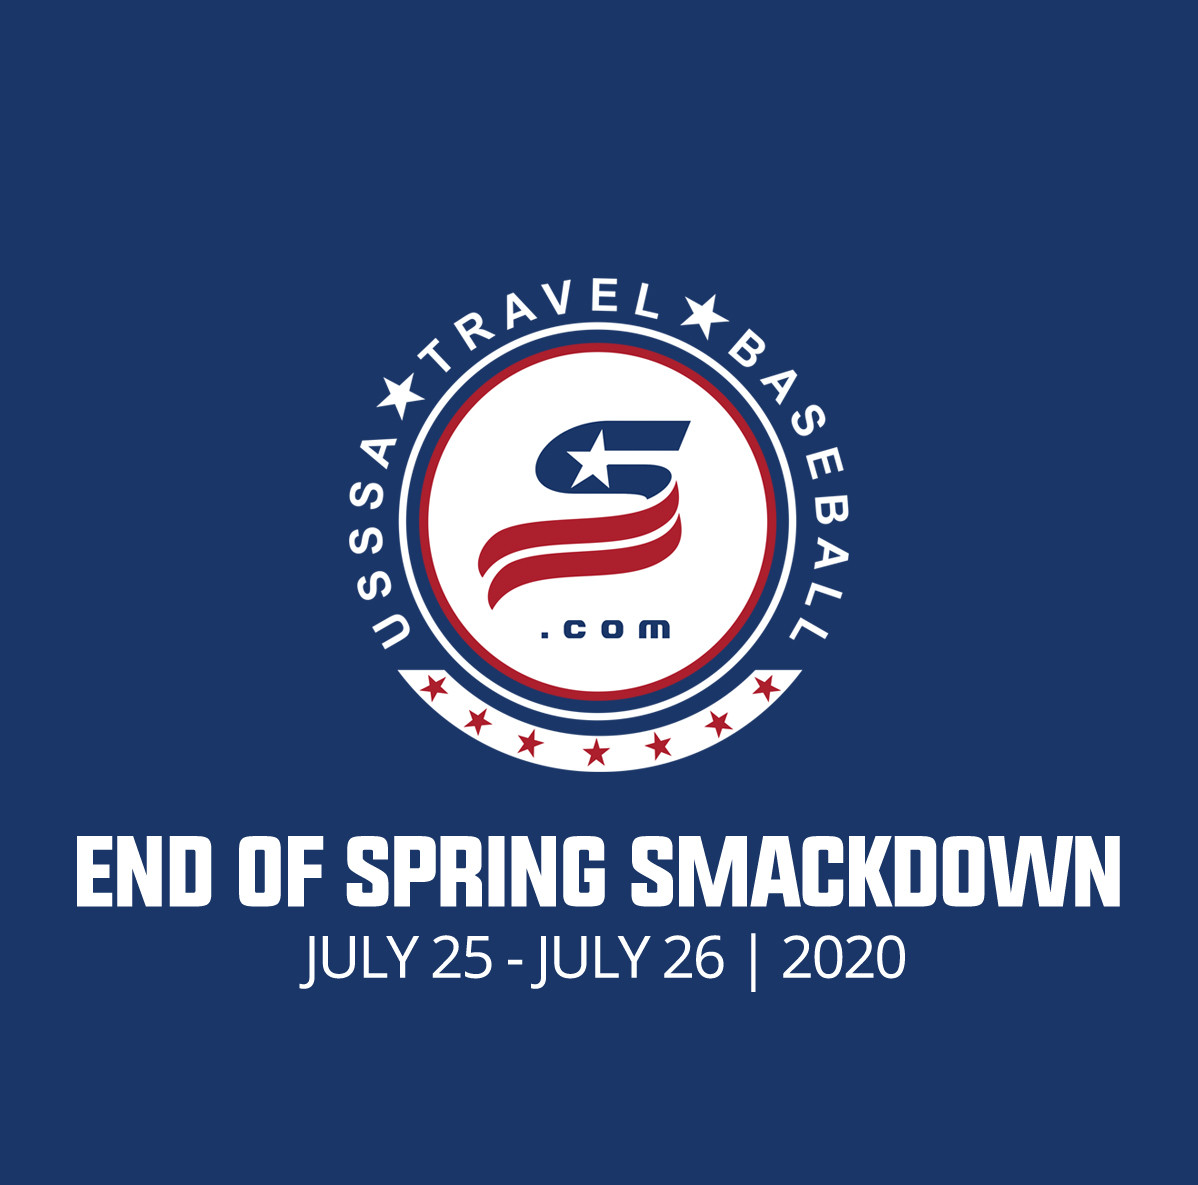 Upstate - END OF SPRING SMACKDOWN